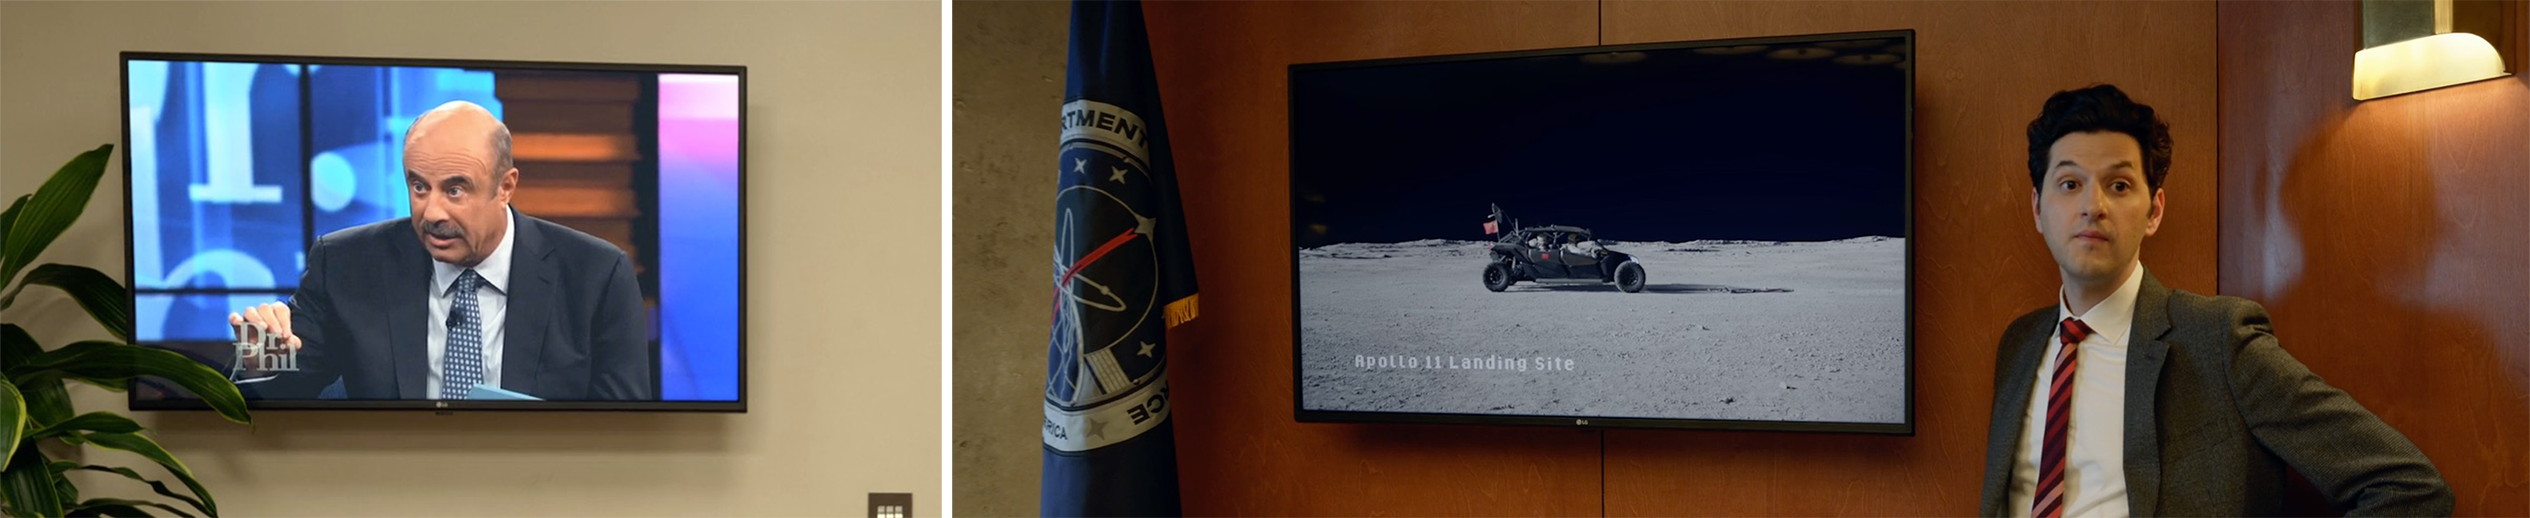 LG TV product placement in Netflix's SPACE FORCE